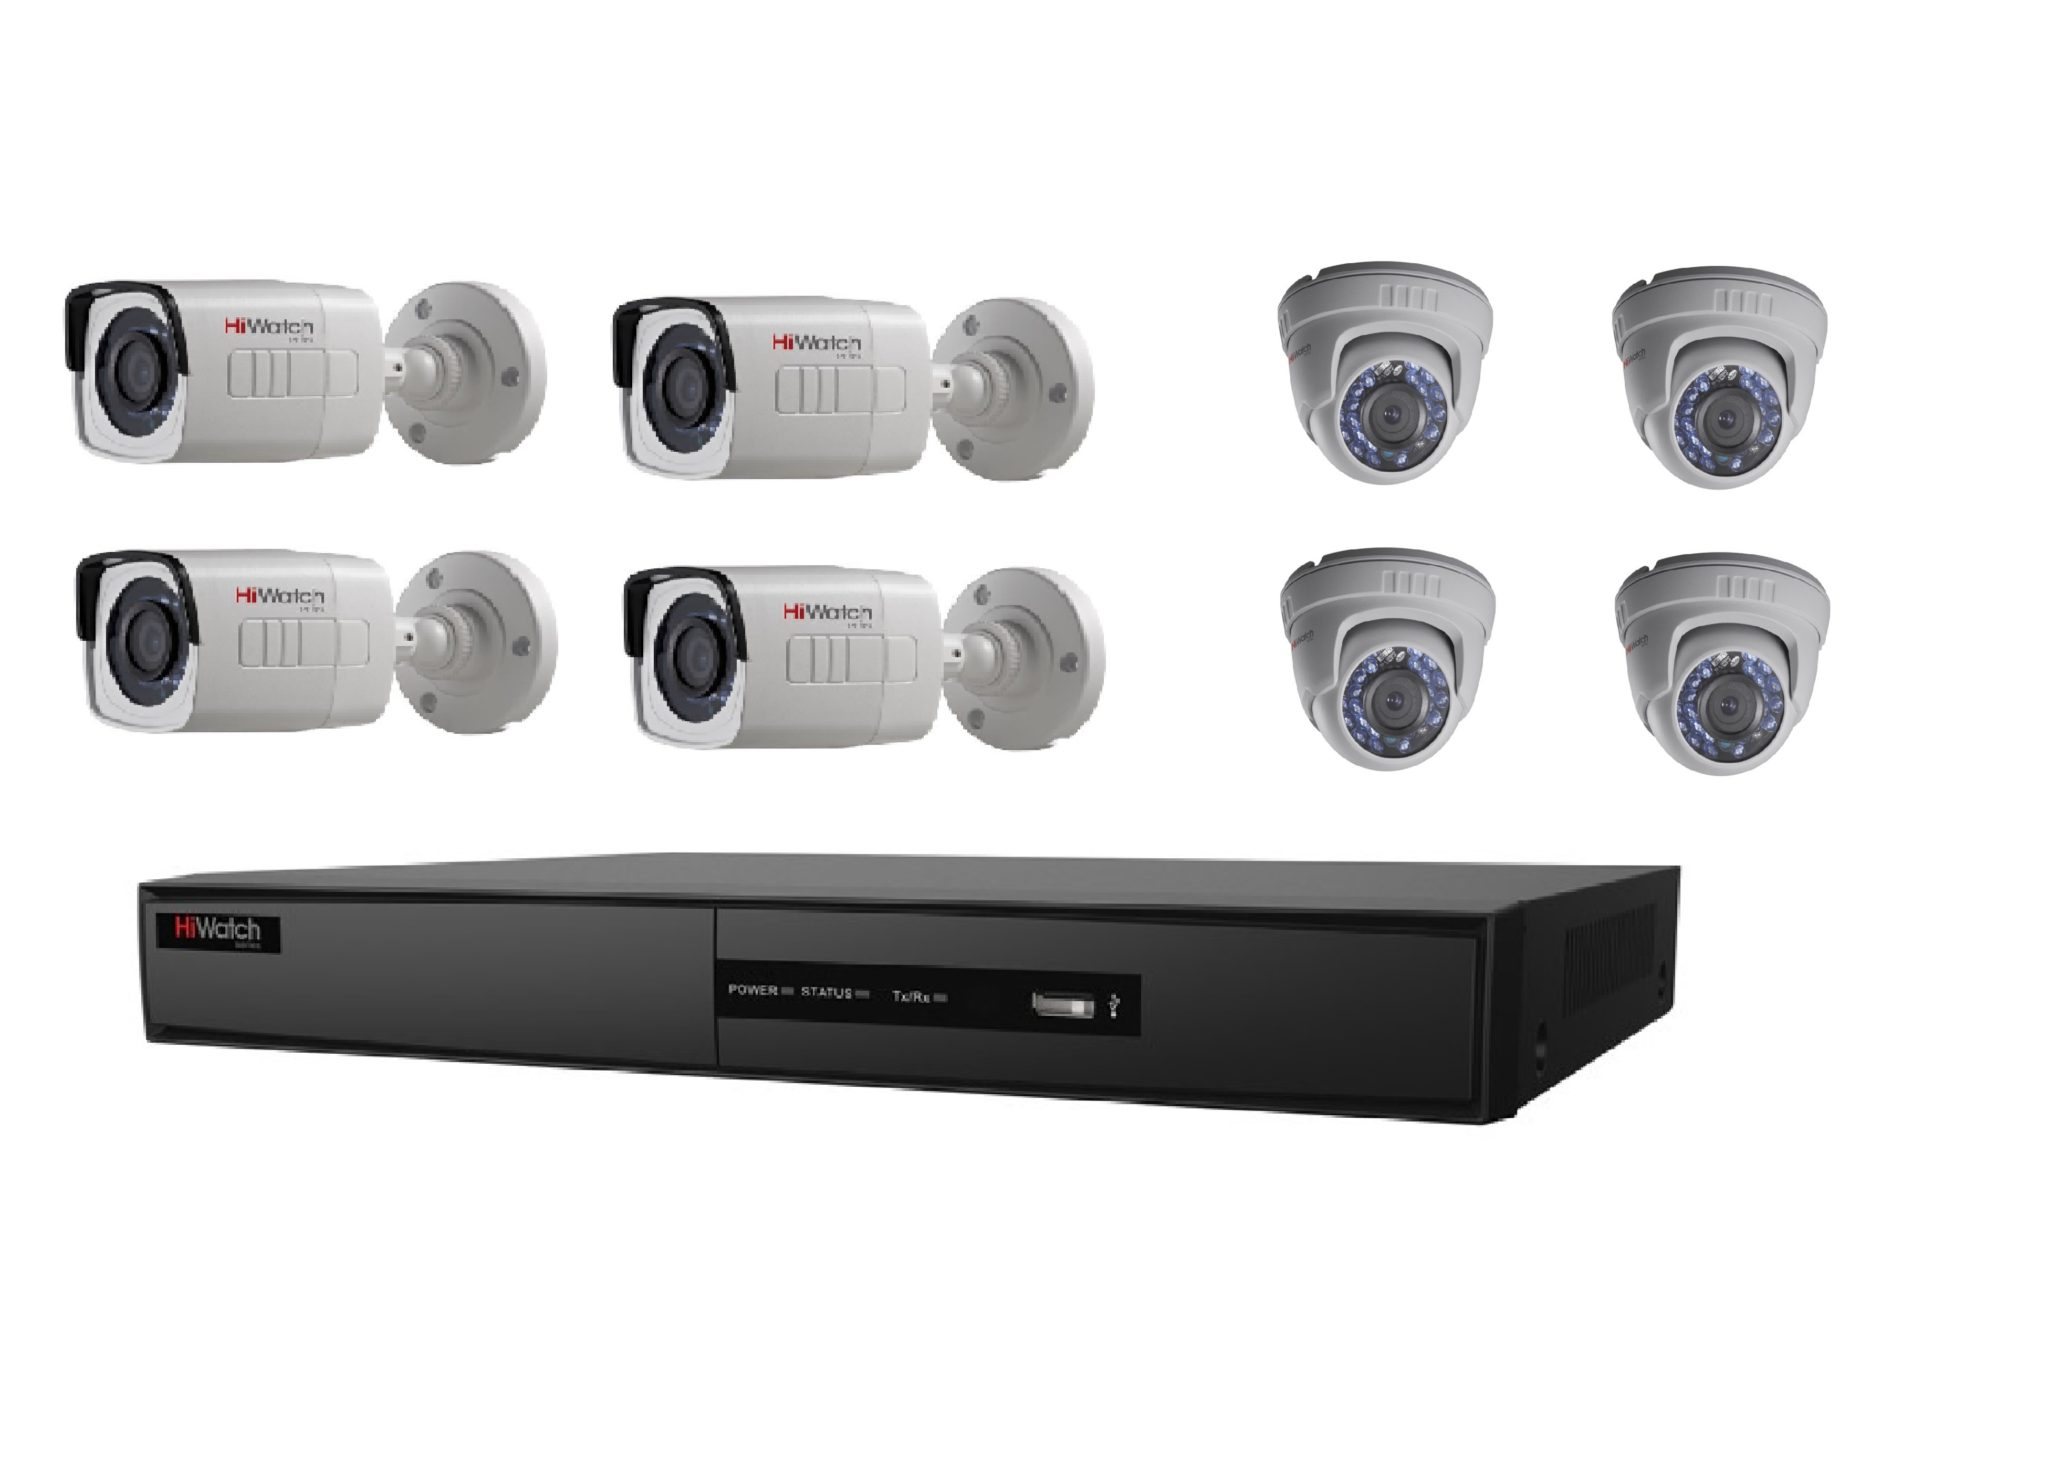 Diy Home Security Camera Reviews Diy 8 Cctv Camera Package Hiwatch By Hikvision Vip 360